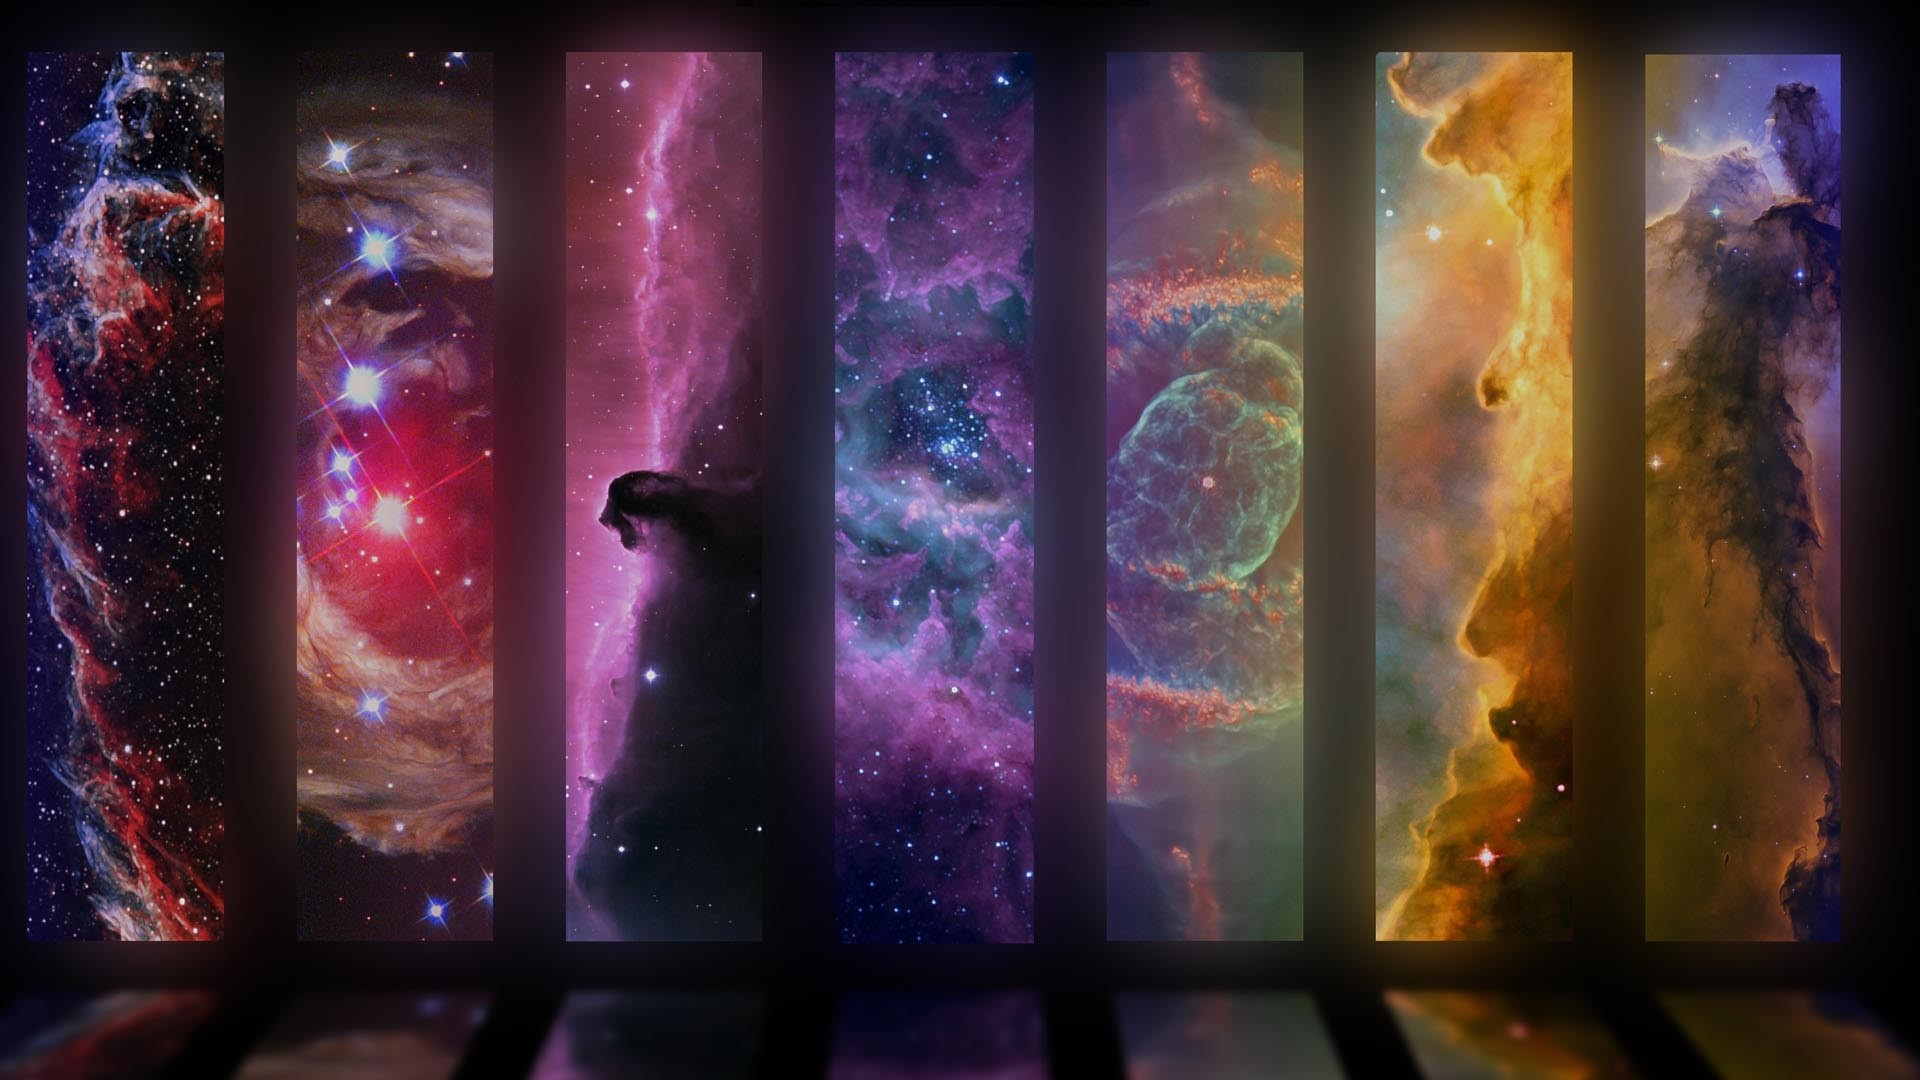 1920x1080 Outer Space Portraits HD Wallpaper. « »